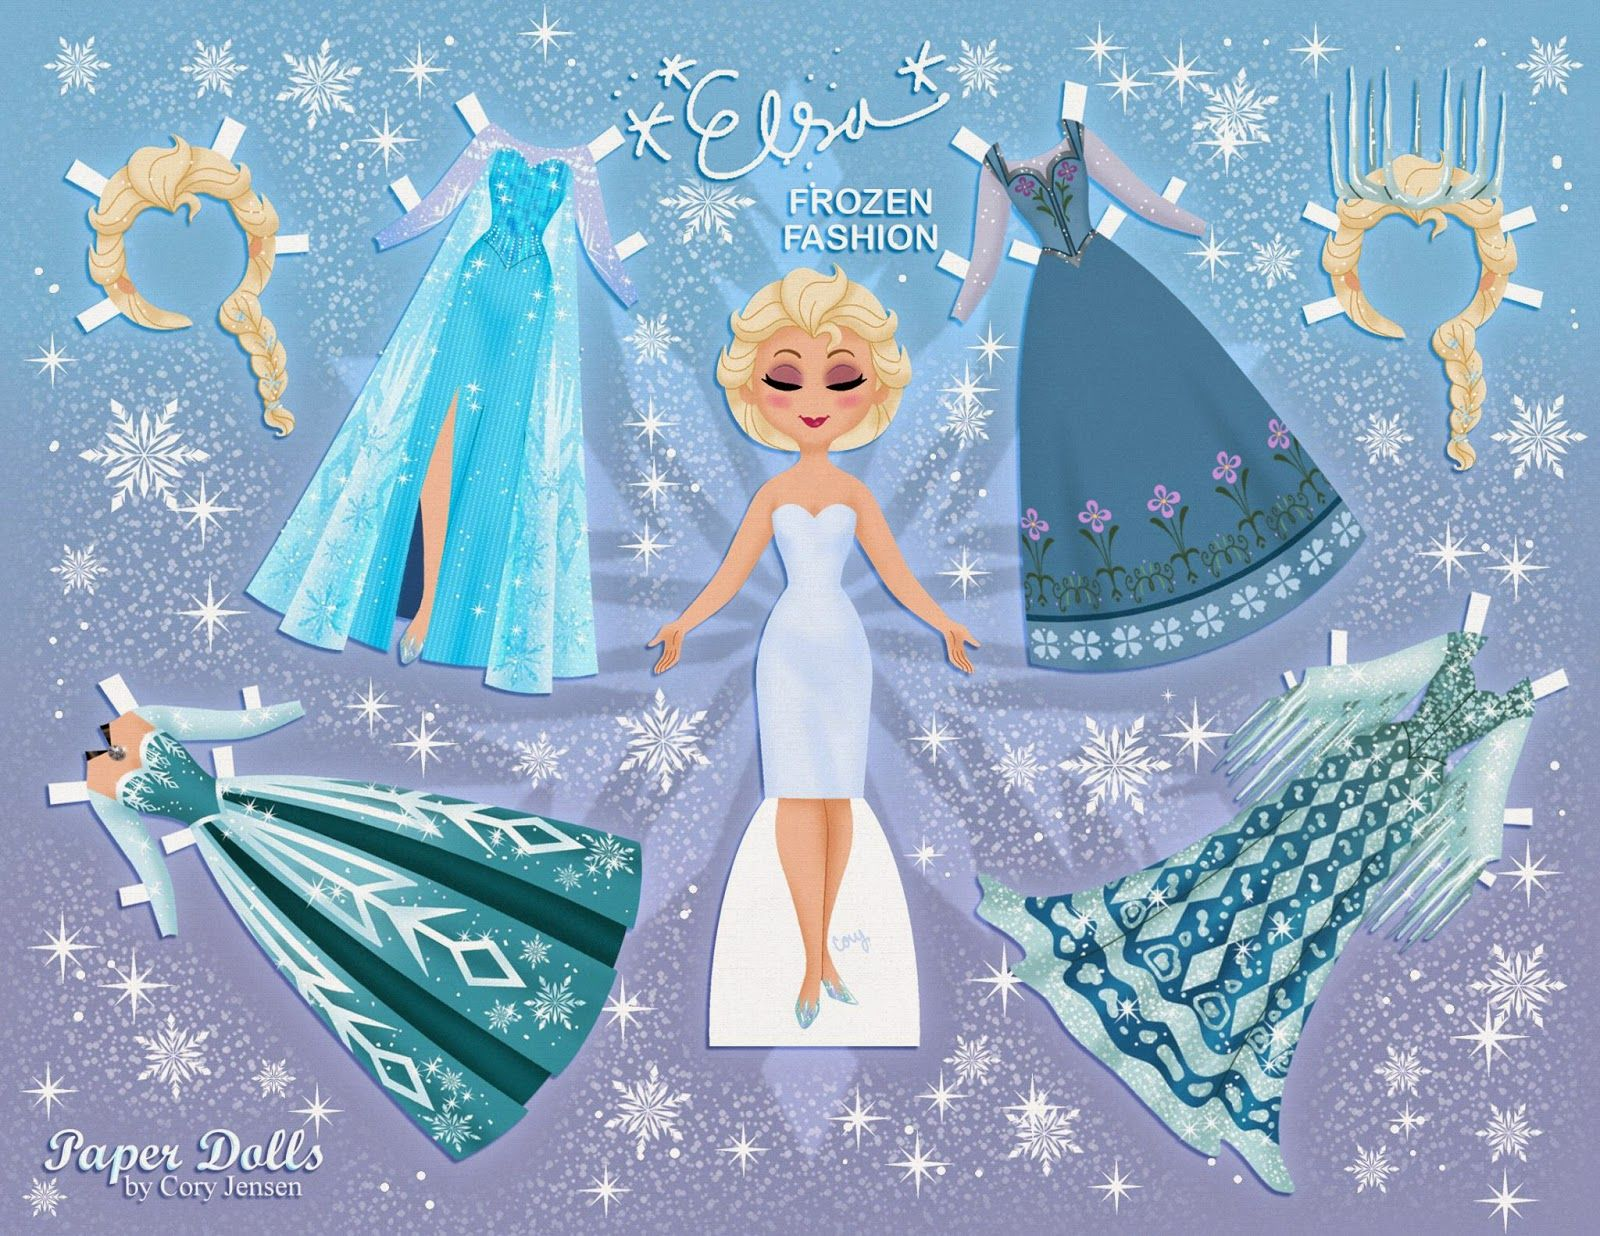 Princess Coloring Pages Disney Frozen Paper Dolls Free Printable Frozen Paper Dolls Paper Dolls Disney Paper Dolls